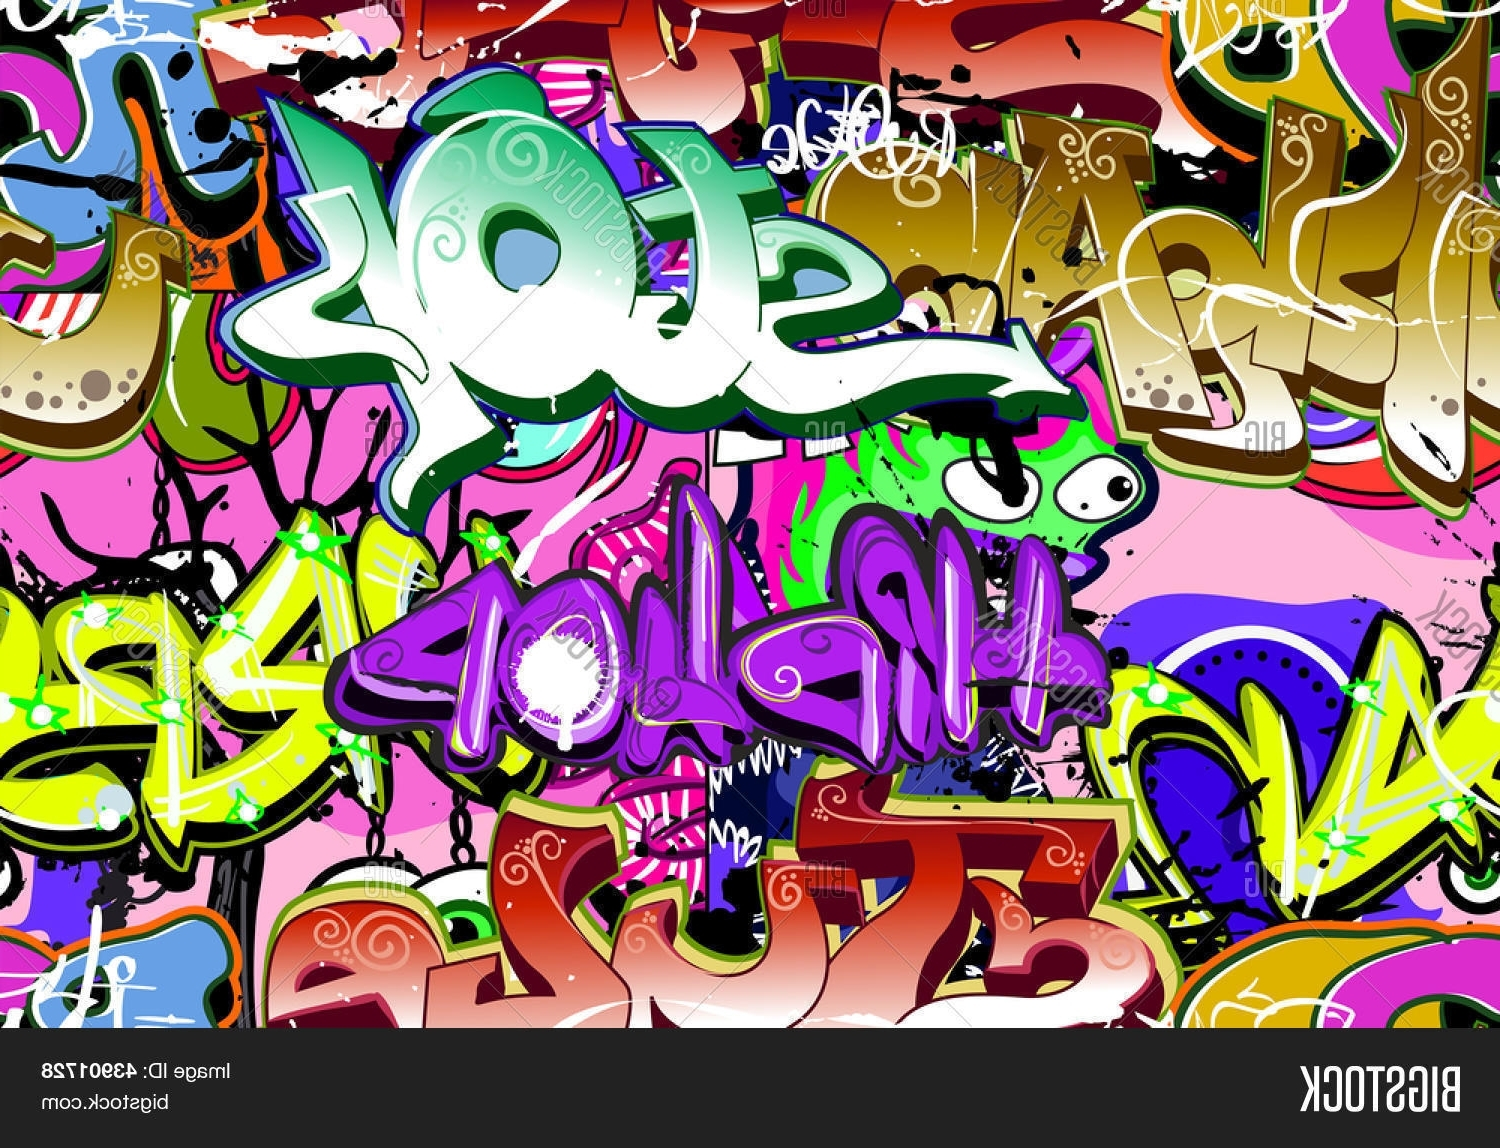 Hip Hop Wall Art Pertaining To Preferred Graffiti Wall Urban Art Background Seamless Hip Hop Image – Cg4P3901728C (View 11 of 15)